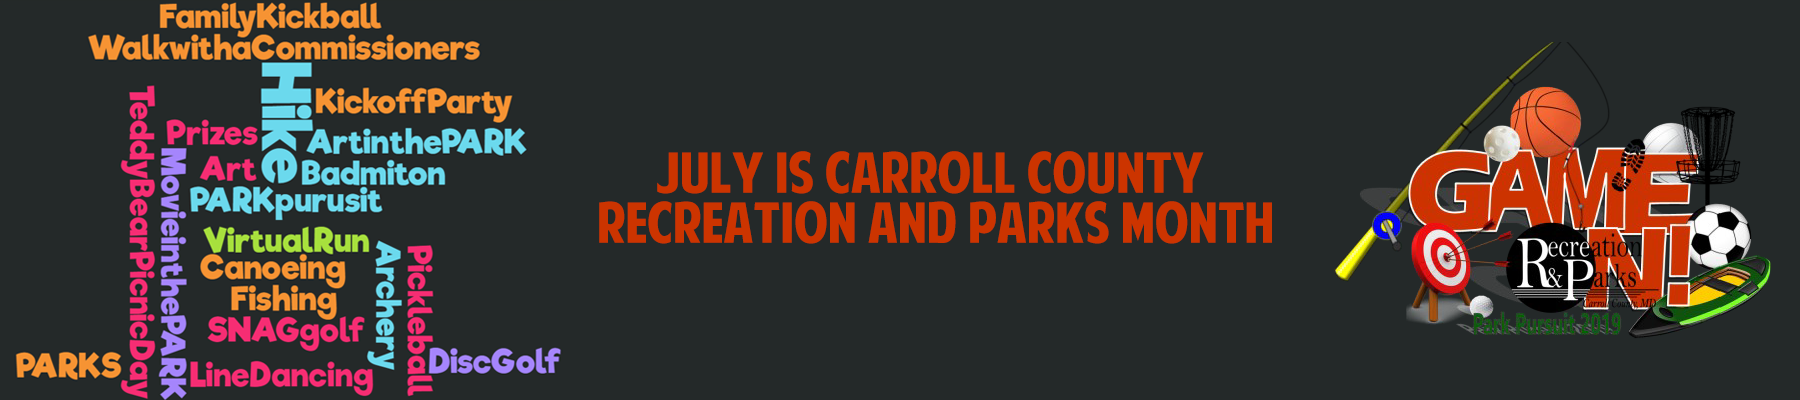 July is Carroll County Recreation and Parks Month